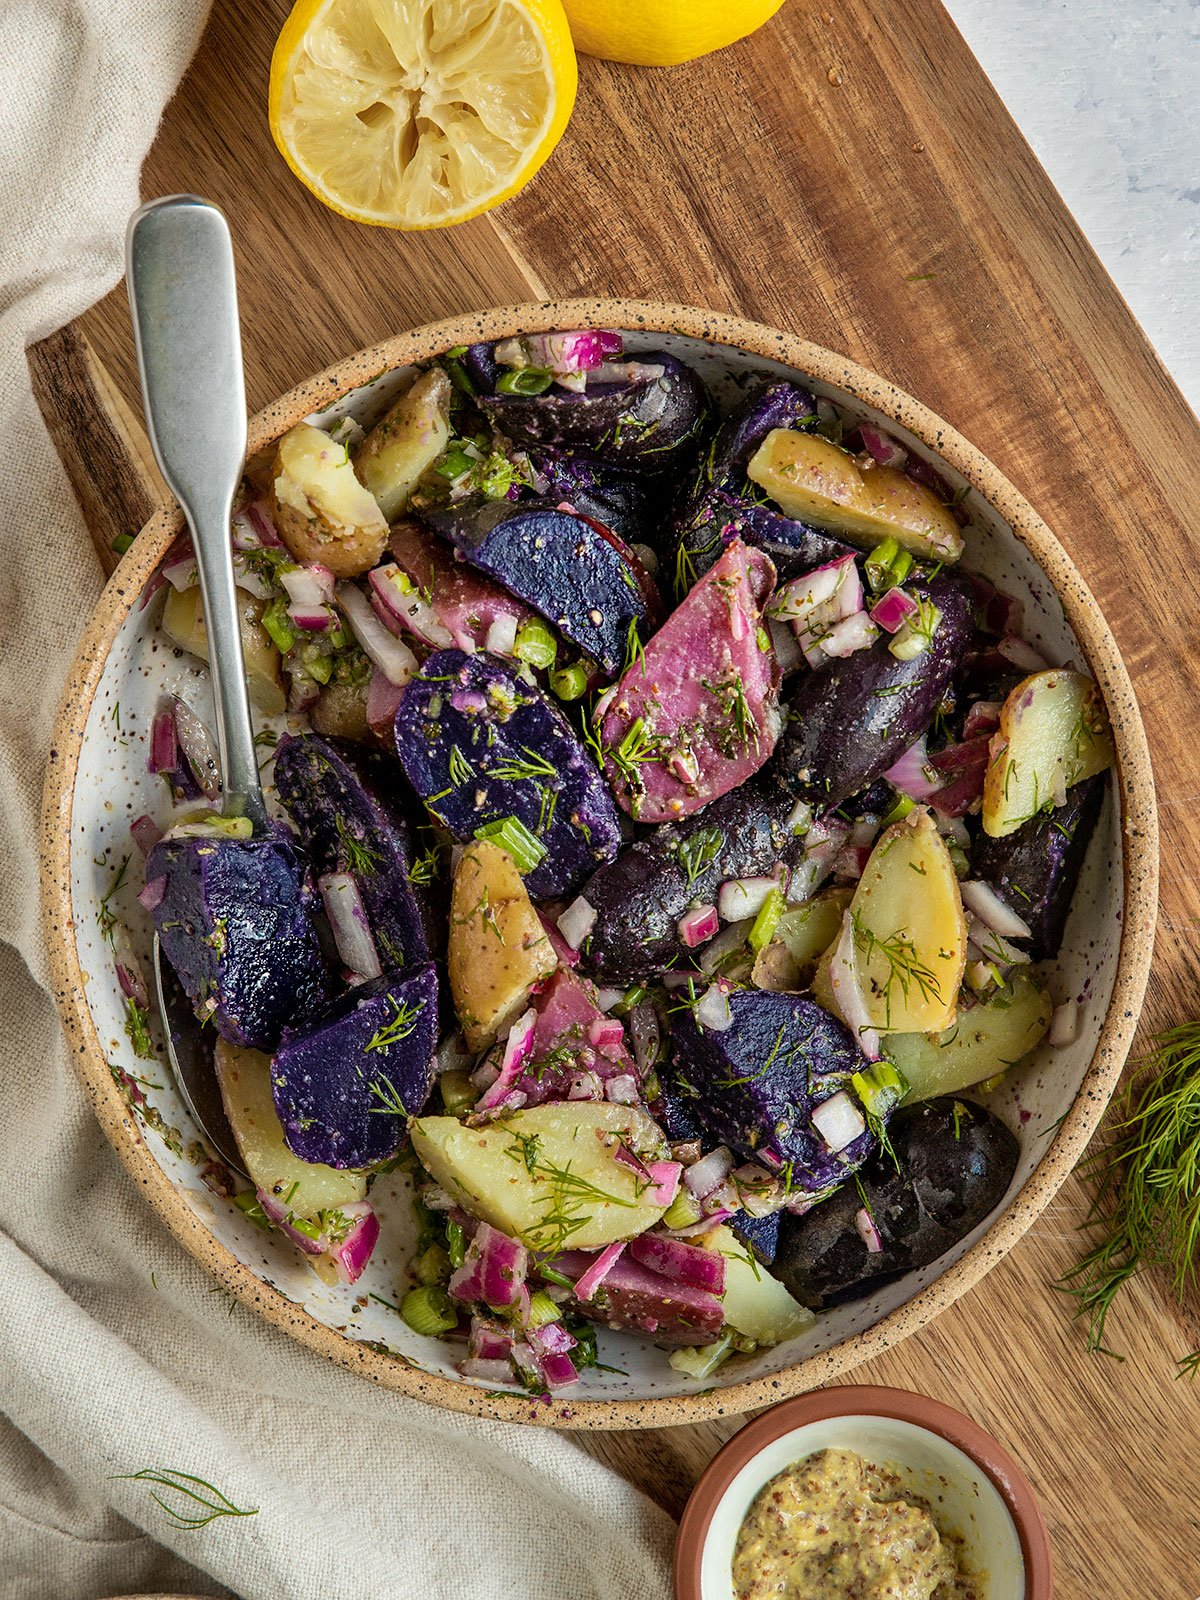 a bowl of potato salad with fingerling potatoes, dill, scallions, red onion, and a dressing